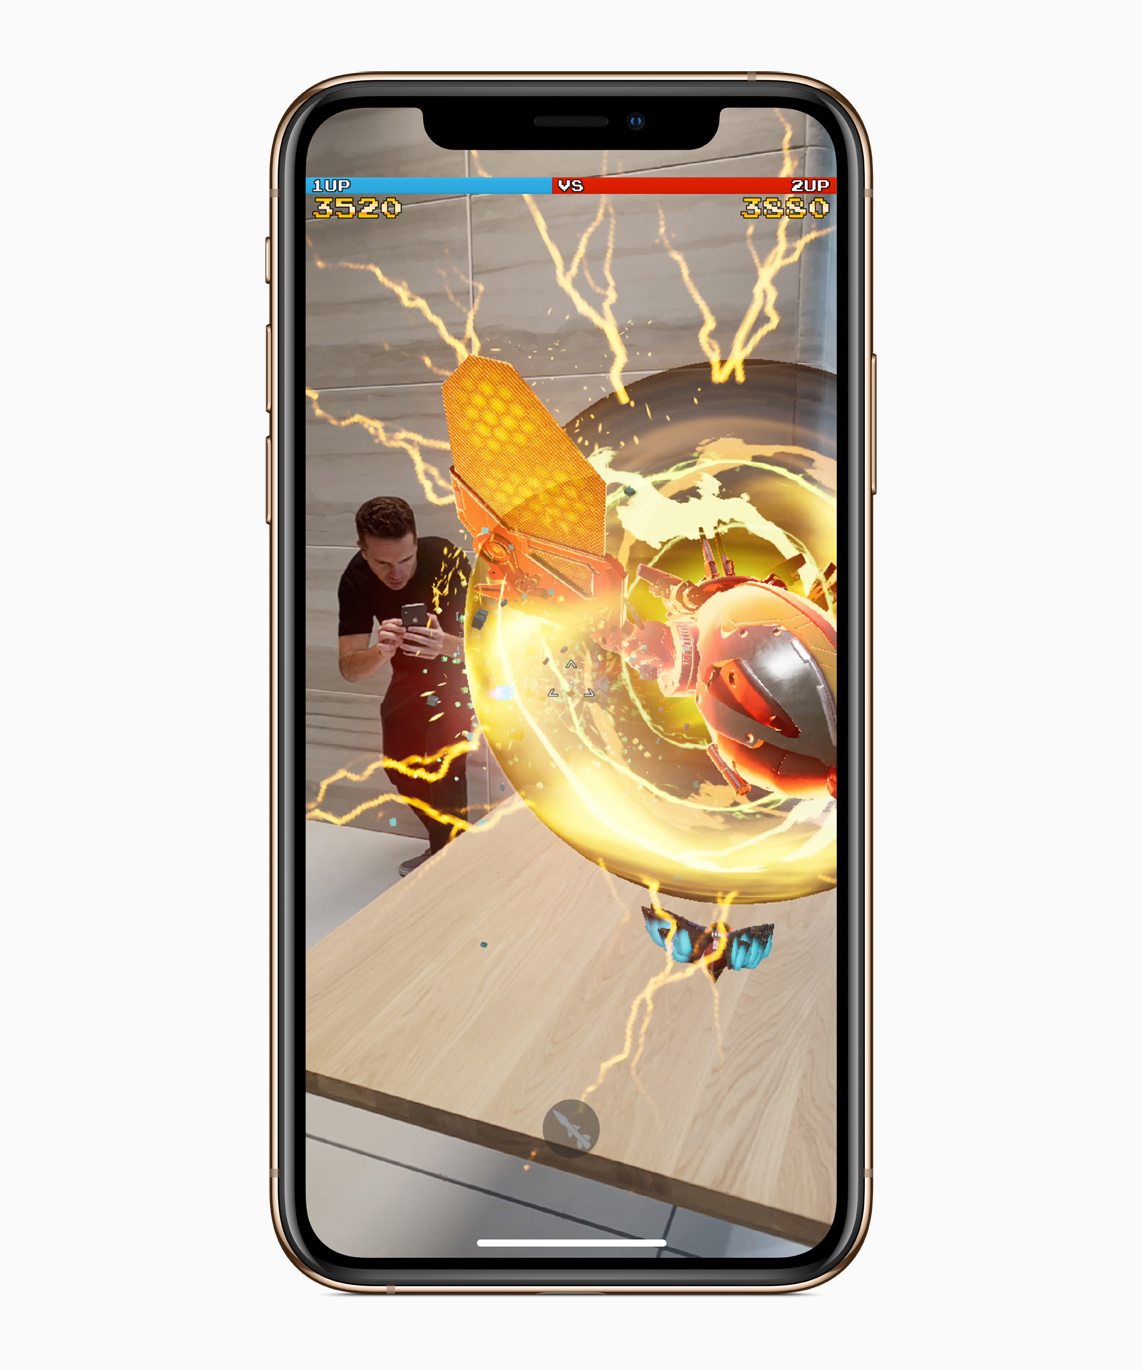 https://www.apple.com/newsroom/images/product/iphone/standard/Apple-iPhone-Xs-Gold-game-screen-09122018_inline.jpg.large_2x.jpg